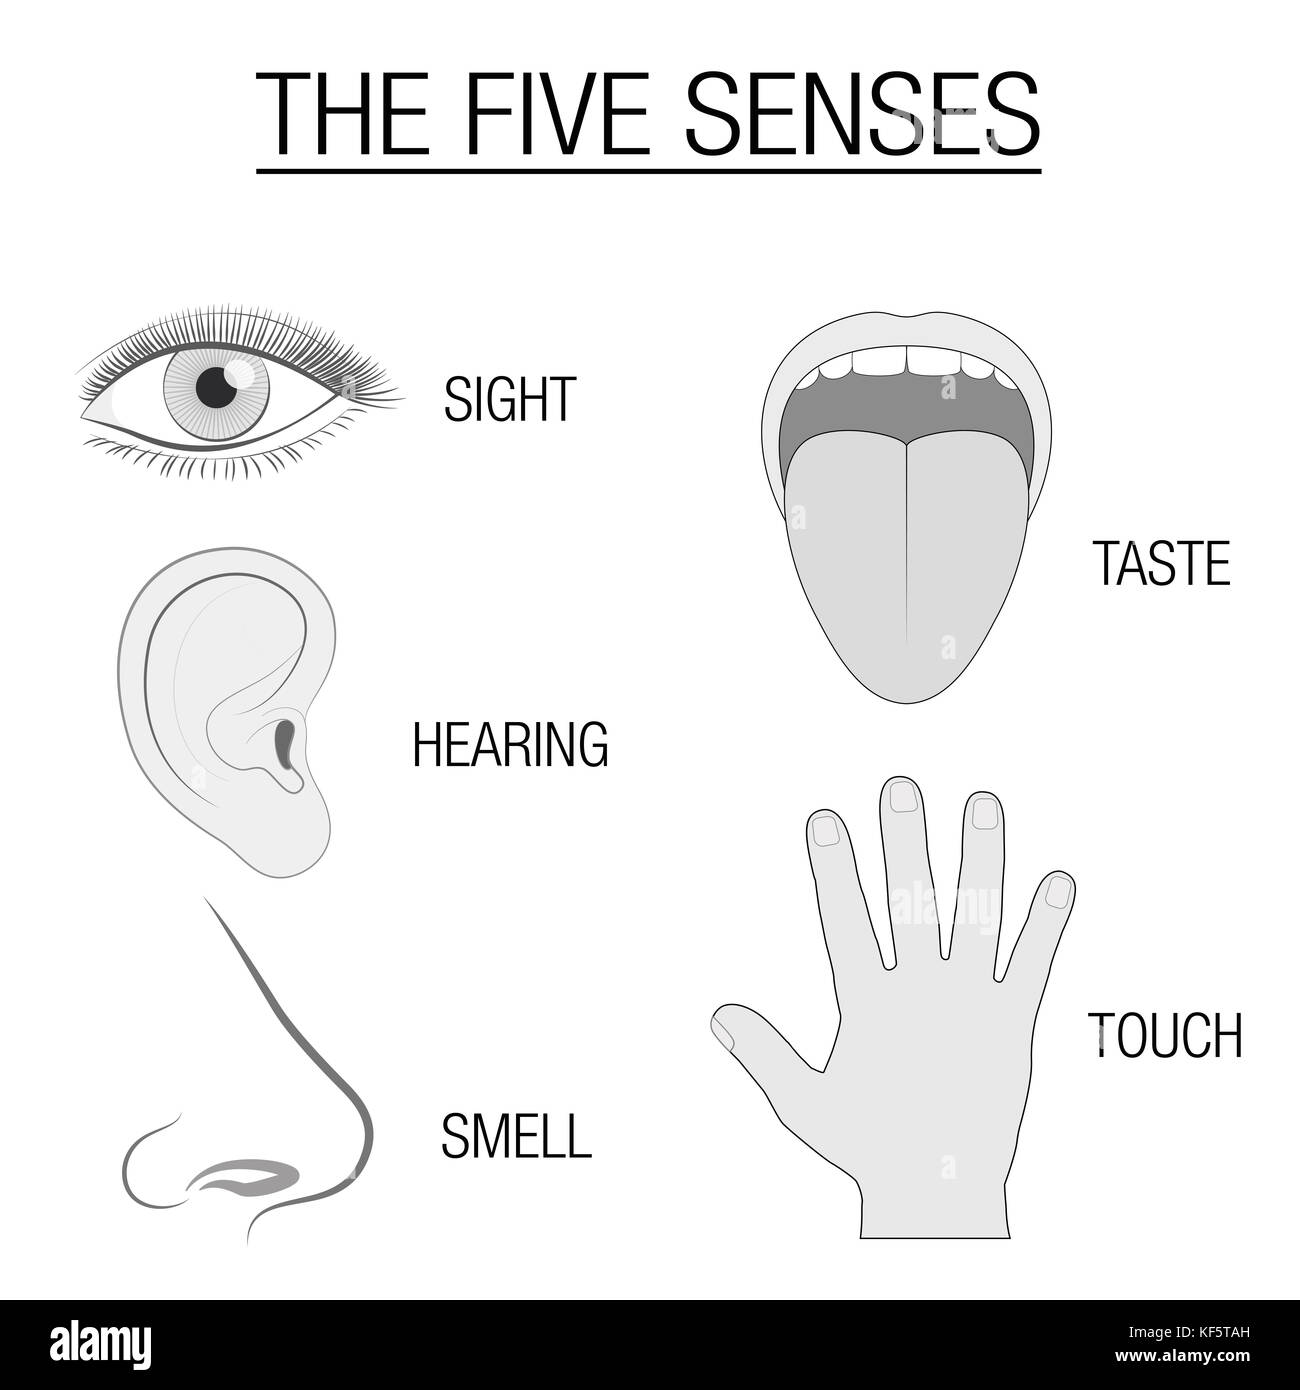 Eye ear tongue nose and hand five senses chart with sensory eye ear tongue nose and hand five senses chart with sensory organs and appropriate designation sight hearing taste smell and touch ccuart Gallery